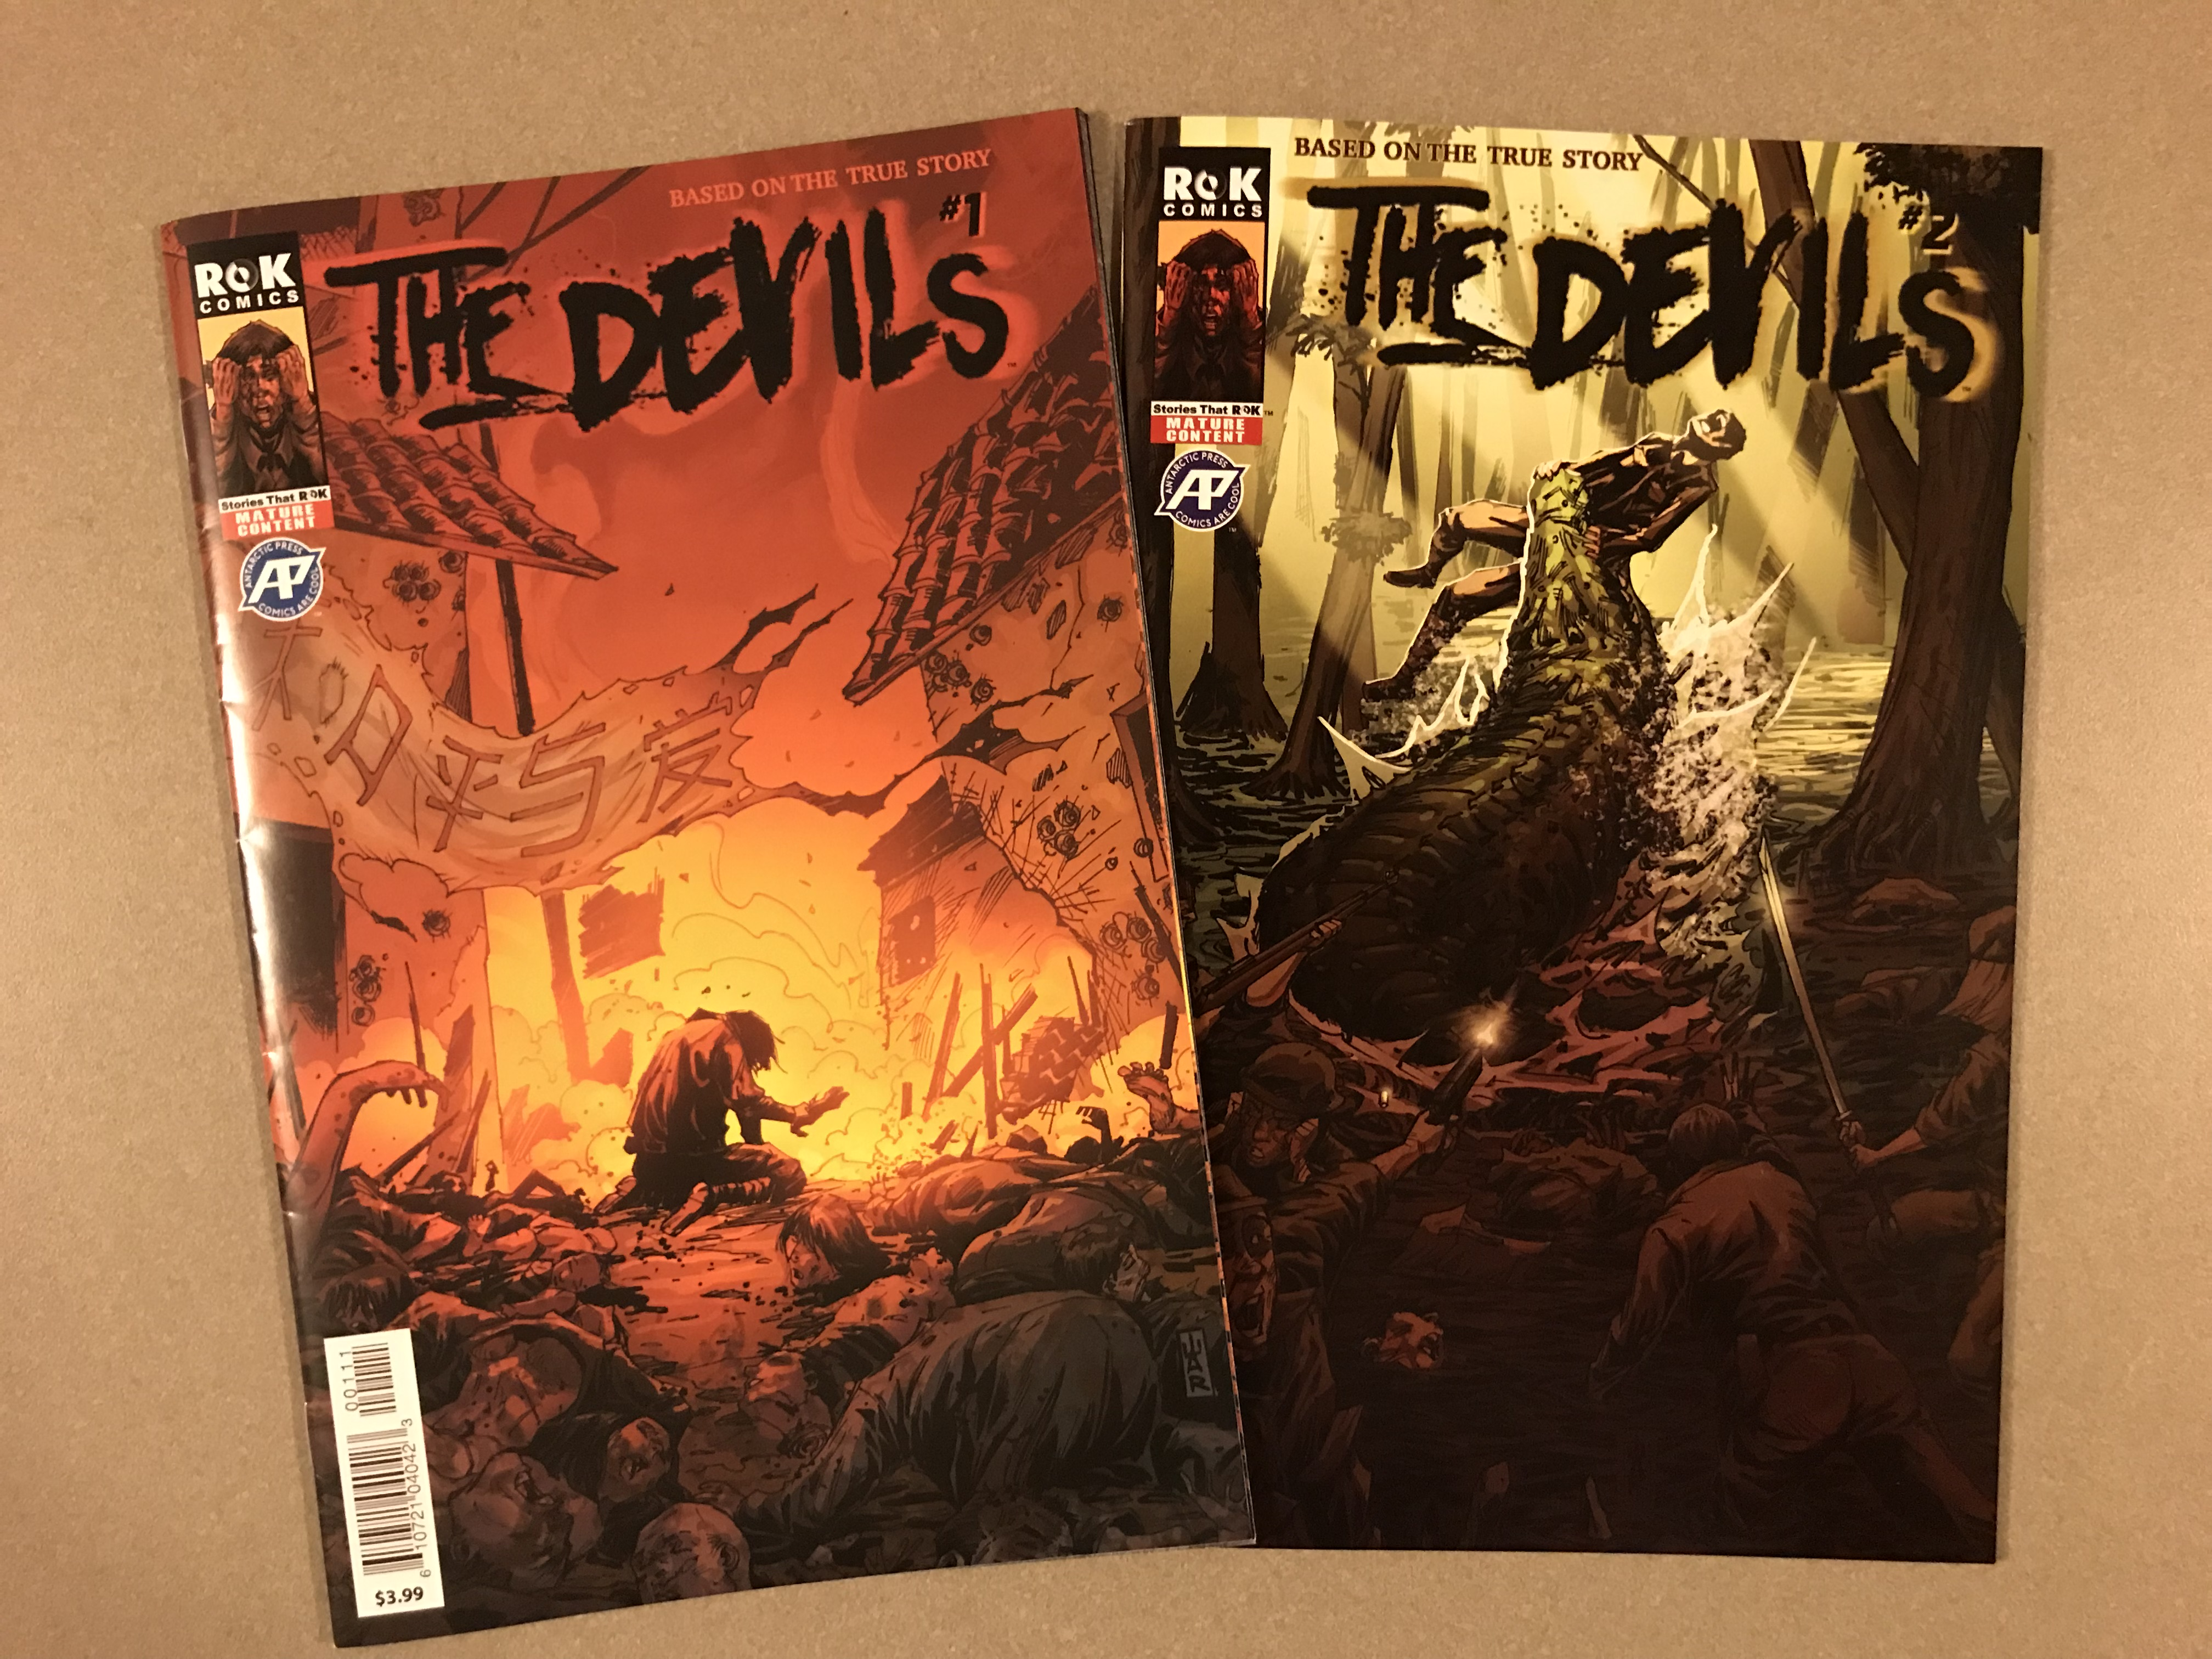 The Devils 1&2